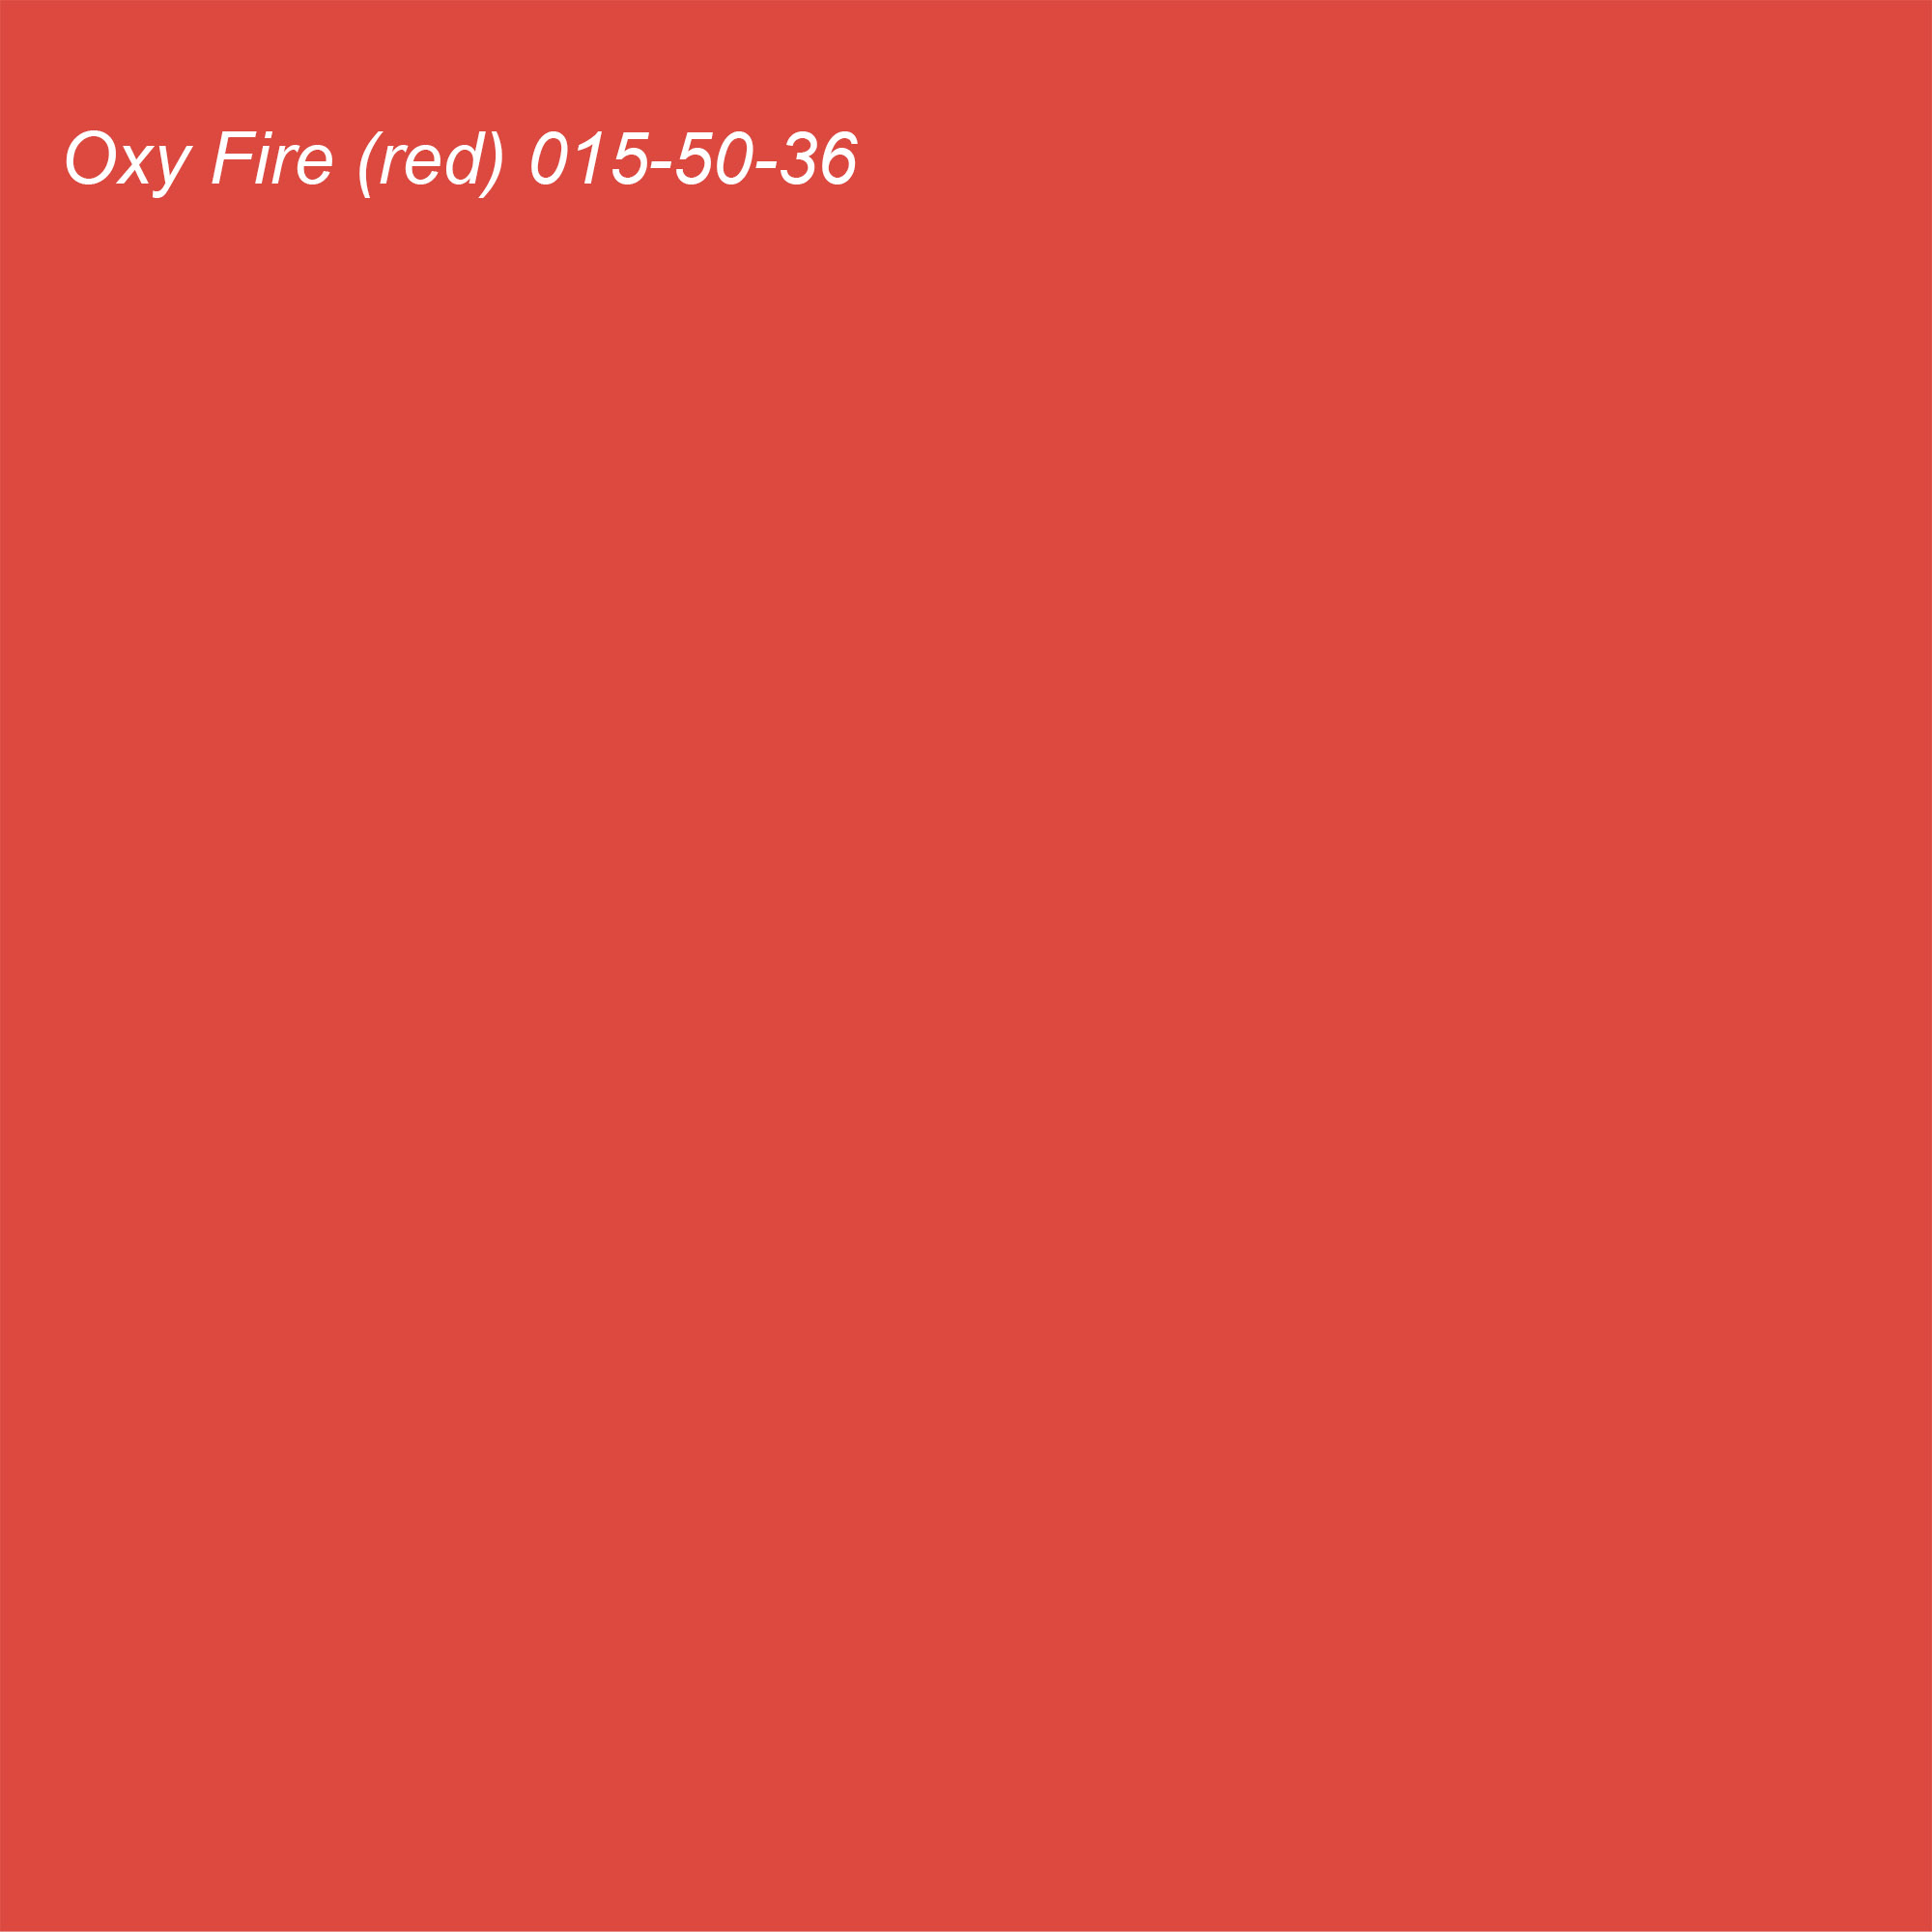 Coloro 2021 Color of the Year Suggested Accent Shade Oxy Fire (red) 015-50-36